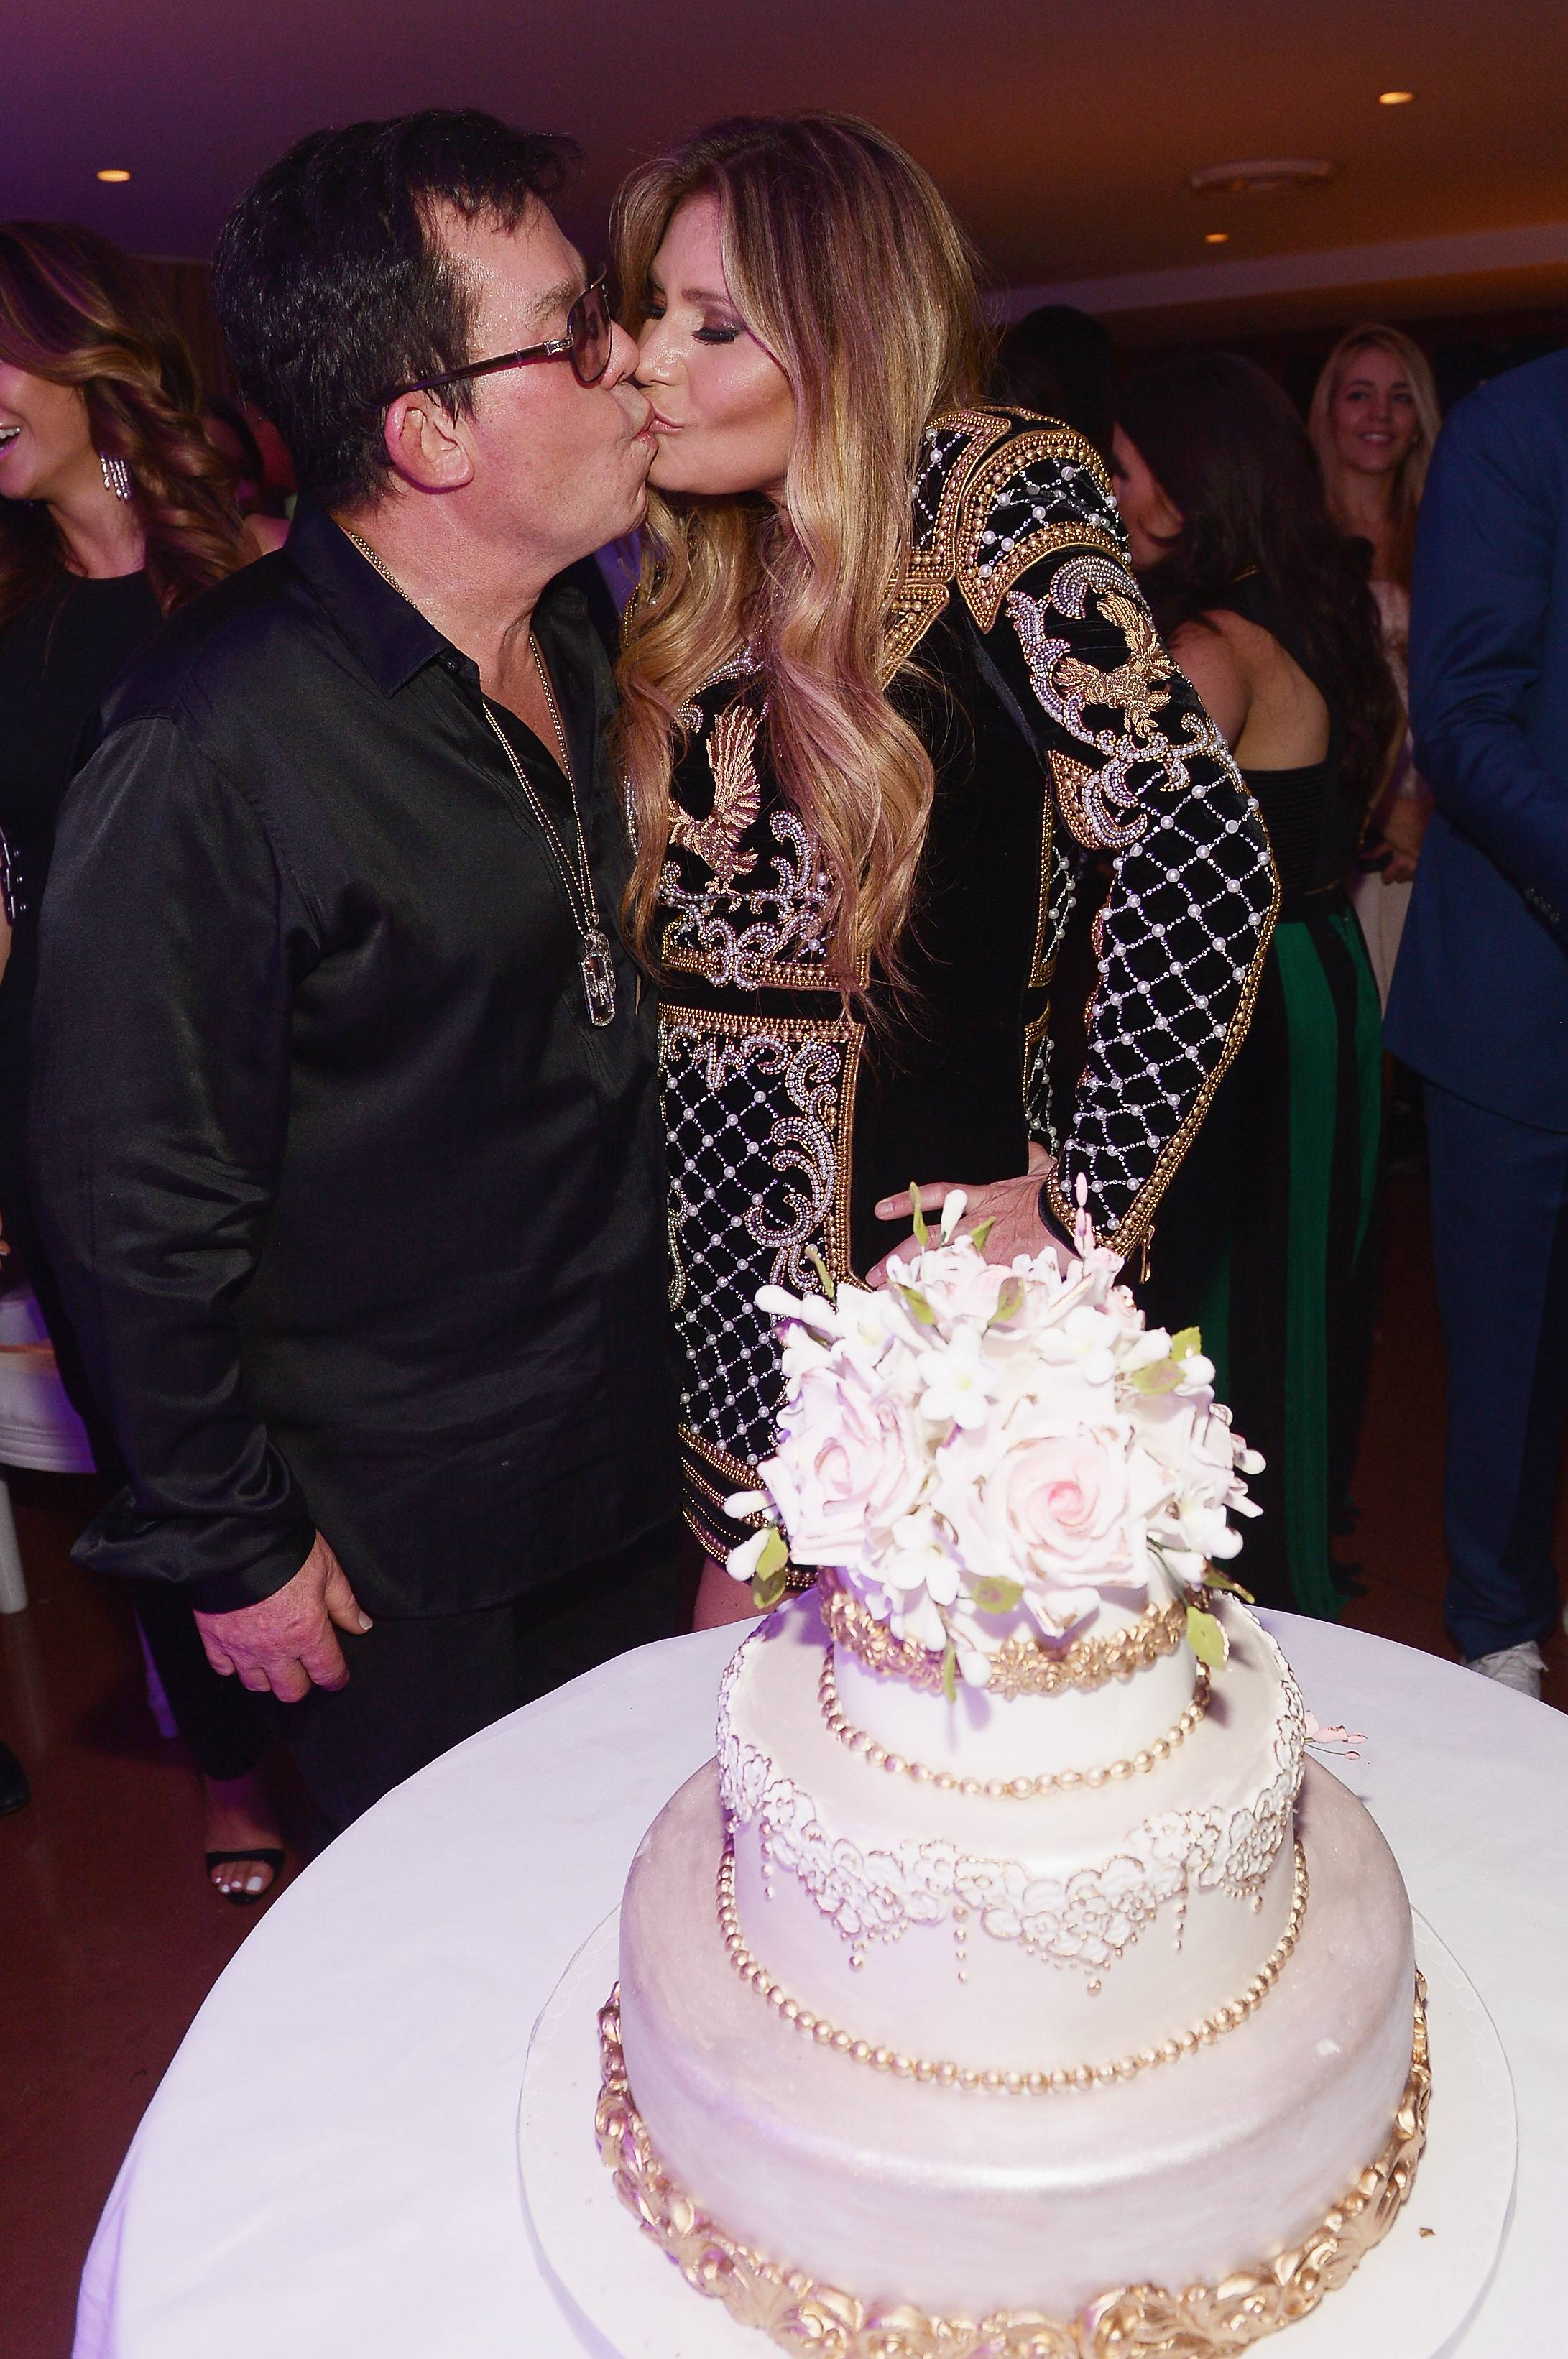 JR Ridinger and Loren Ridinger attend Haute Living celebrates Loren Ridinger's birthday at Cipriani Downtown Miami on November 21, 2015 in Miami, Florida. (Photo by Gustavo Caballero/Getty Images for Haute Living)